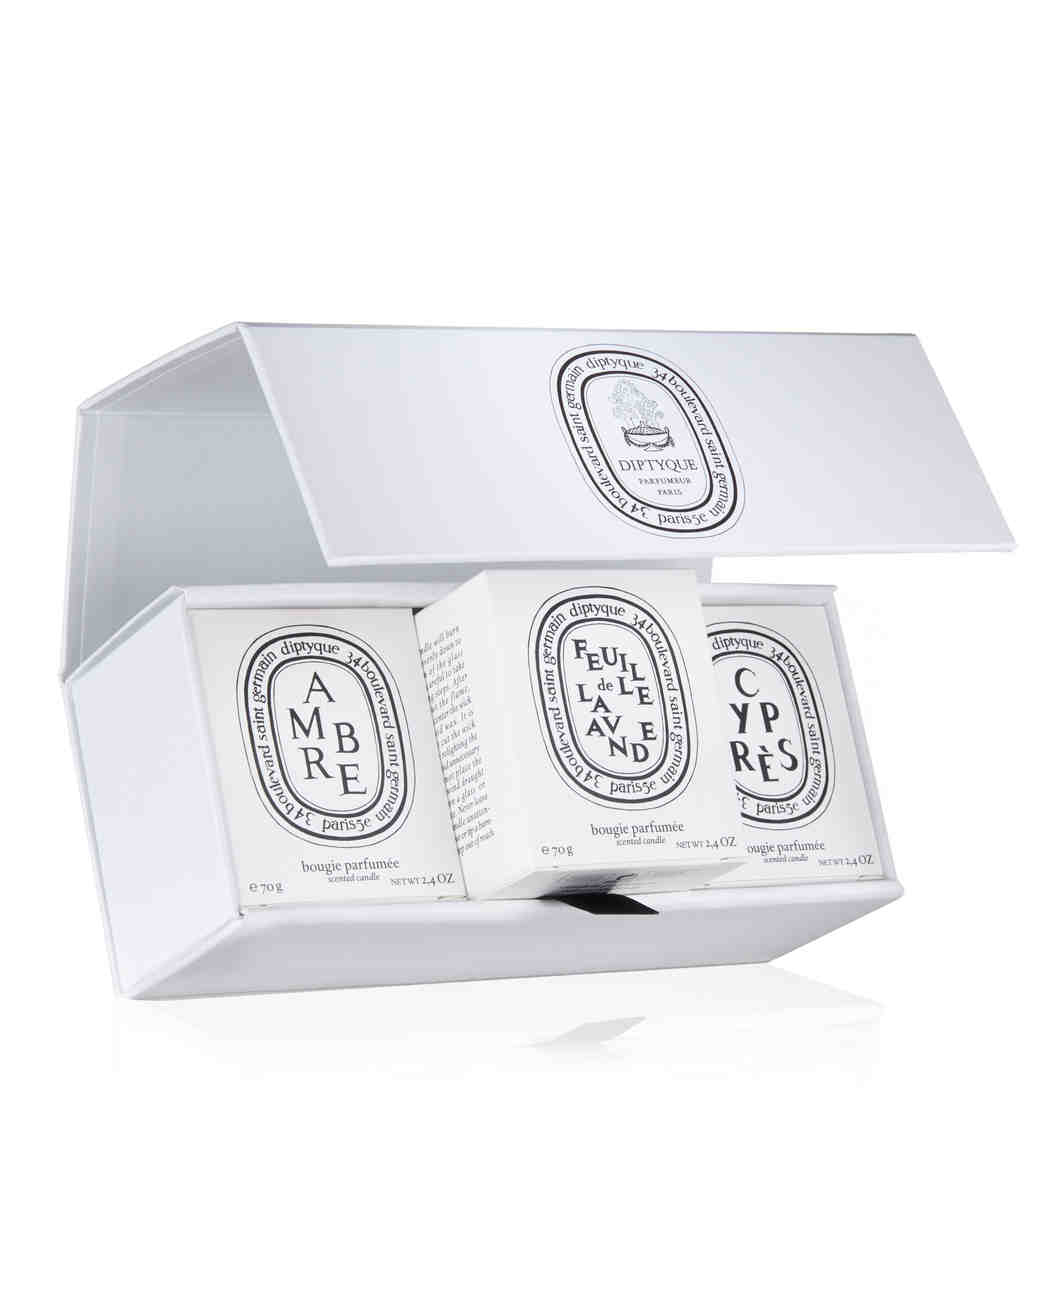 bridesmaid-gifts-diptyque-candles-0914.jpg